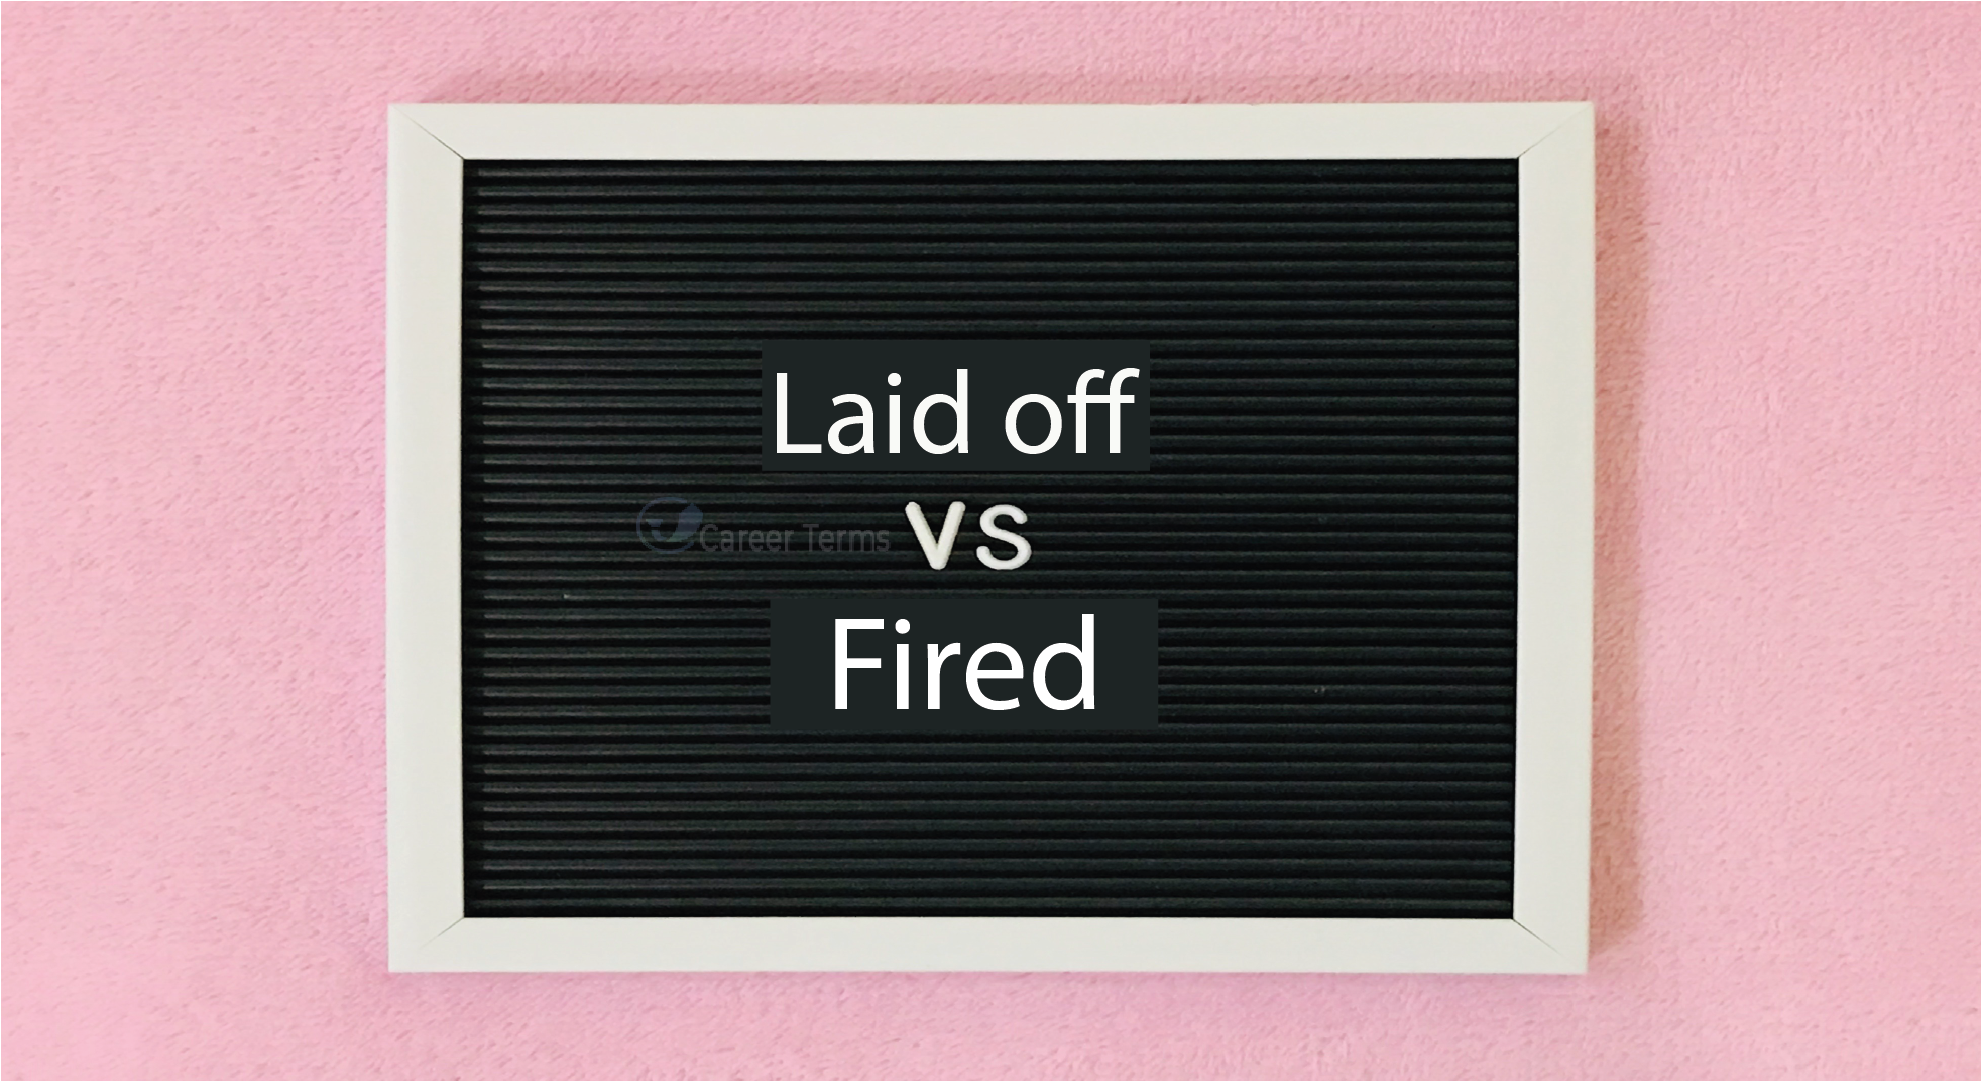 laid off vs fired